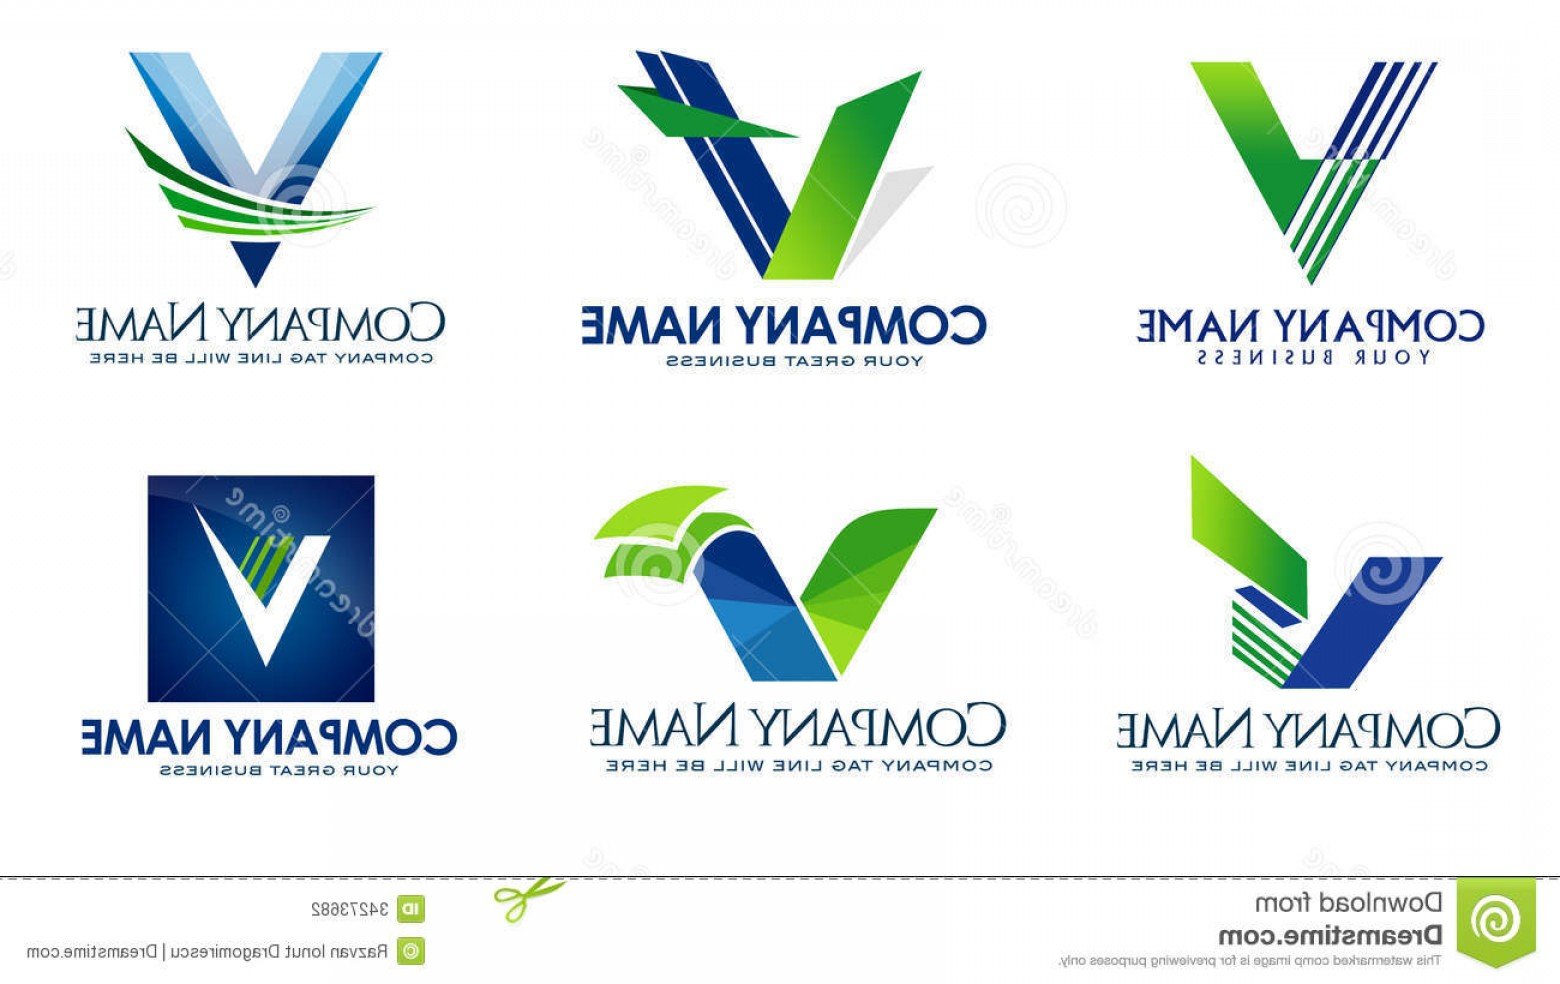 V Logo Vector: Stock Photography Letter V Logo Illustration Representing Collection Can Be Used Business Financial Institutions Have Their Image